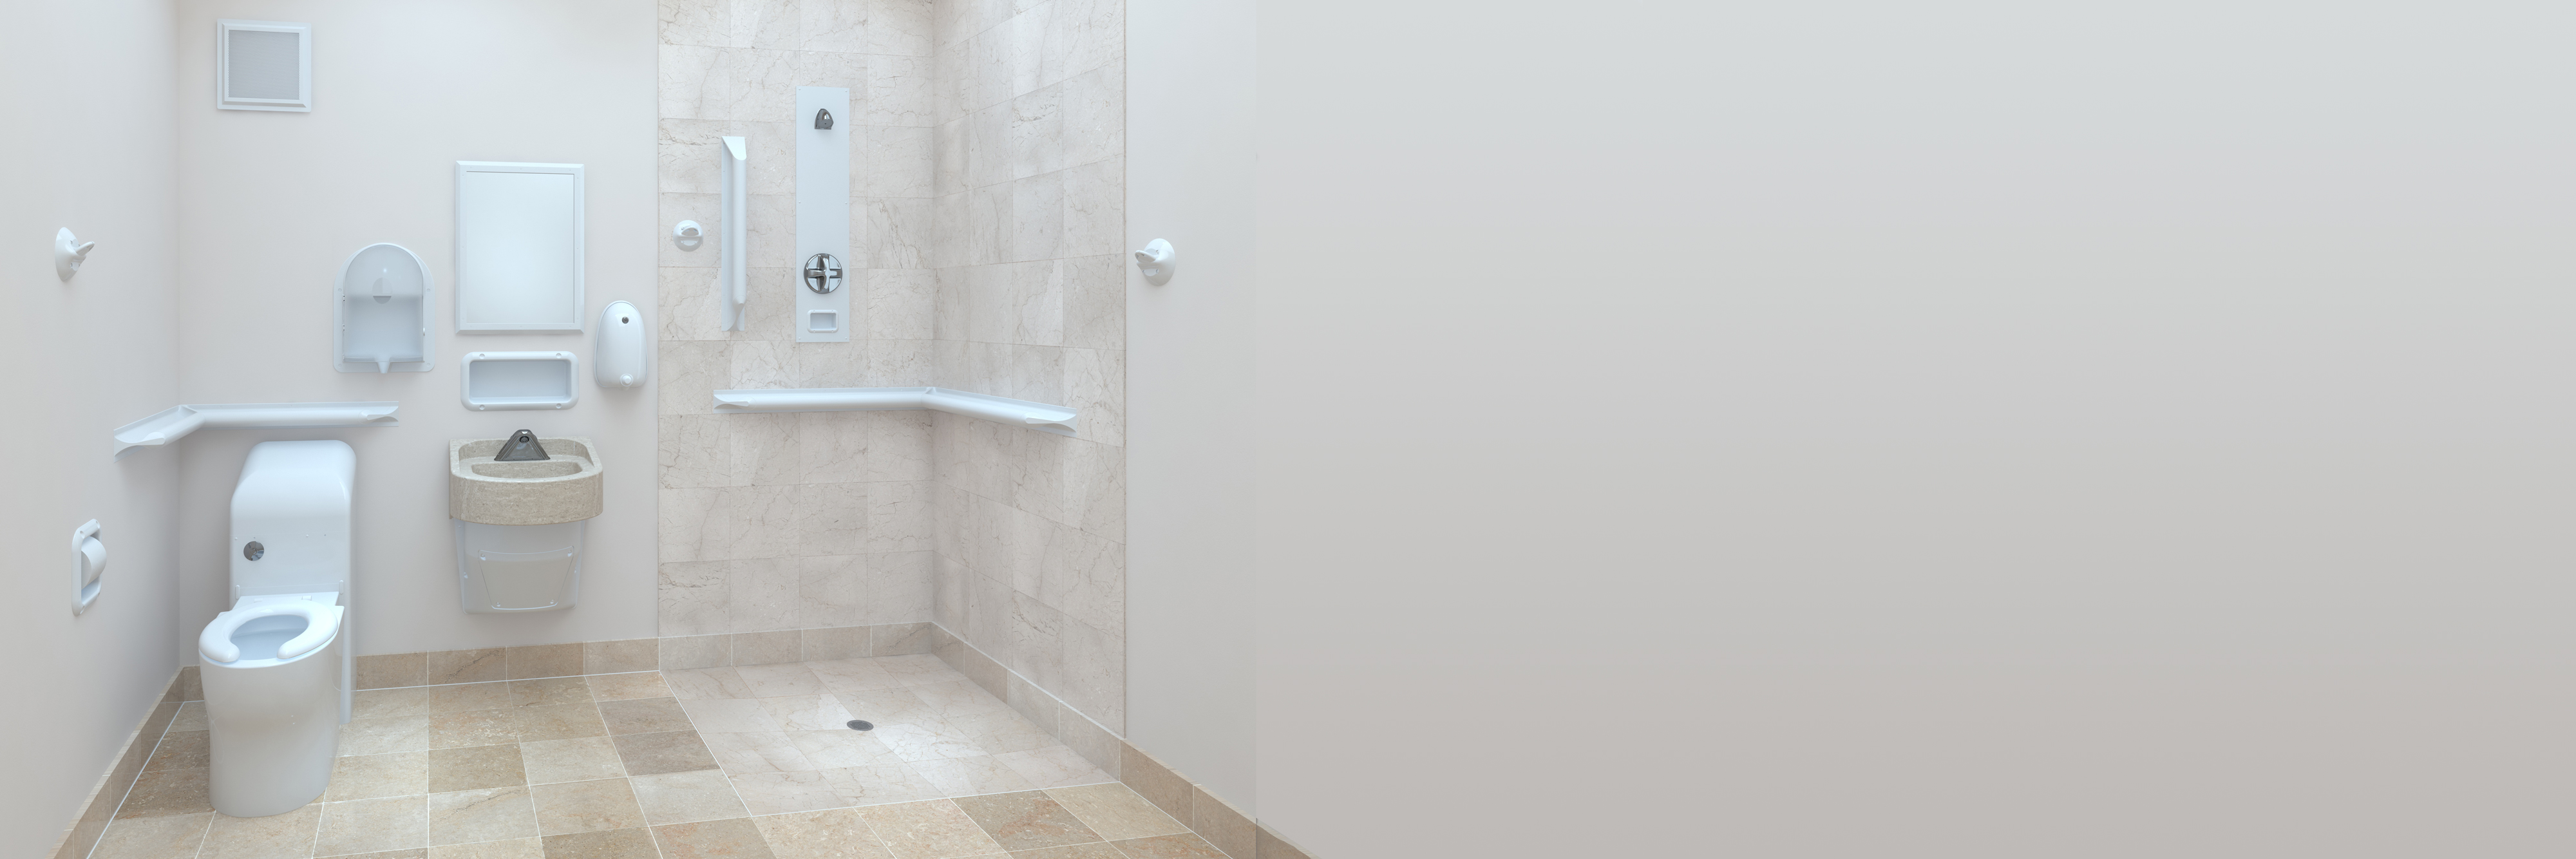 Ligature Resistant Products in bathroom